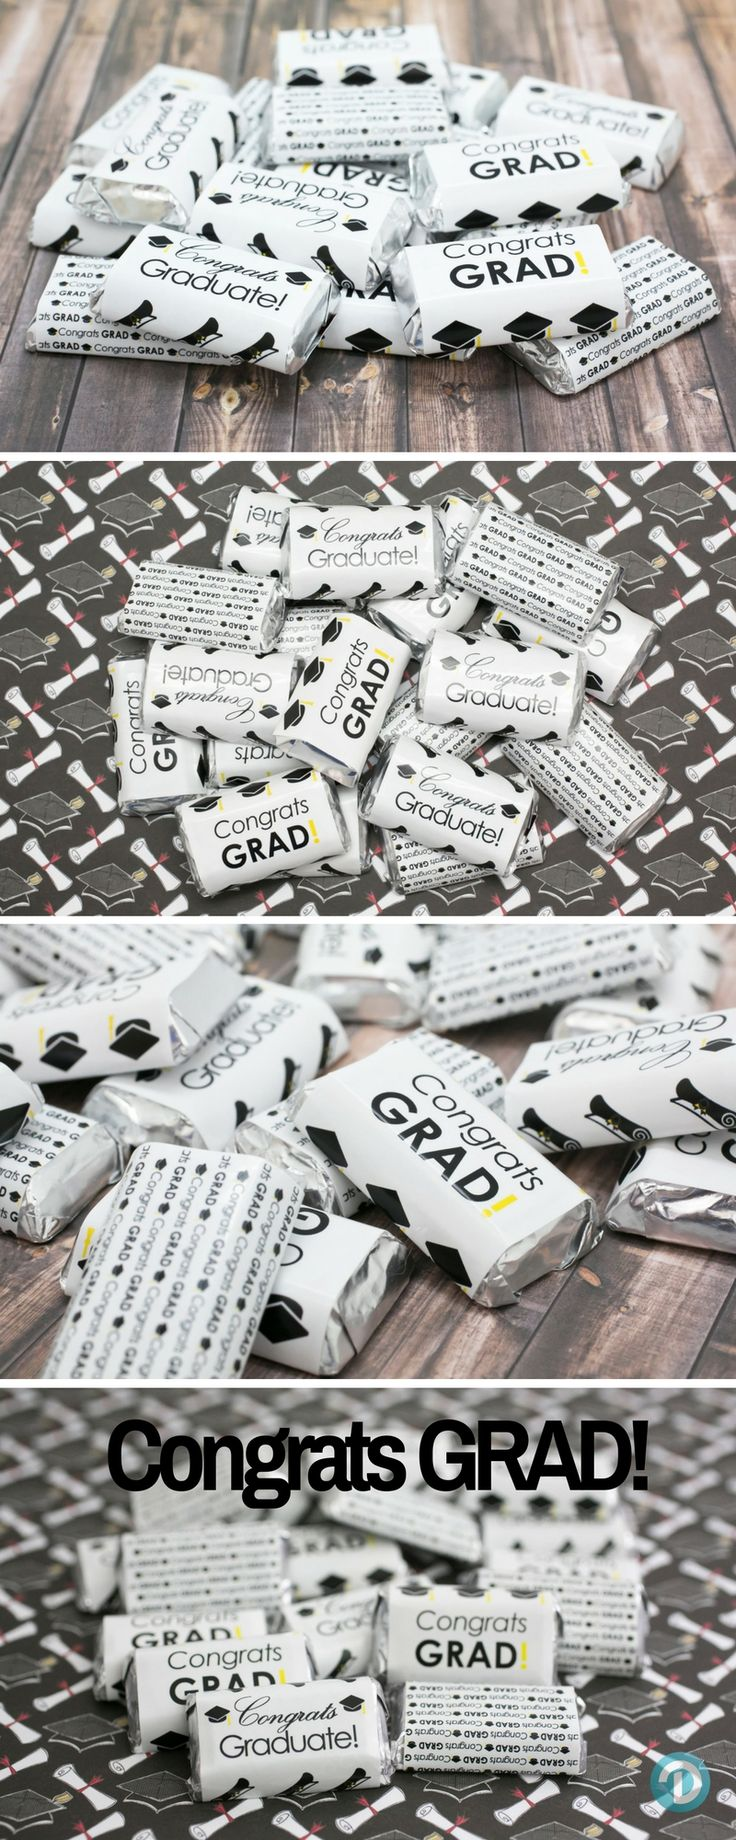 Congratulations Graduate! Enjoy  these Graduation themed stickers for  Hershey's Miniatures Bars to make a simple and easy graduation party favor or table decoration!